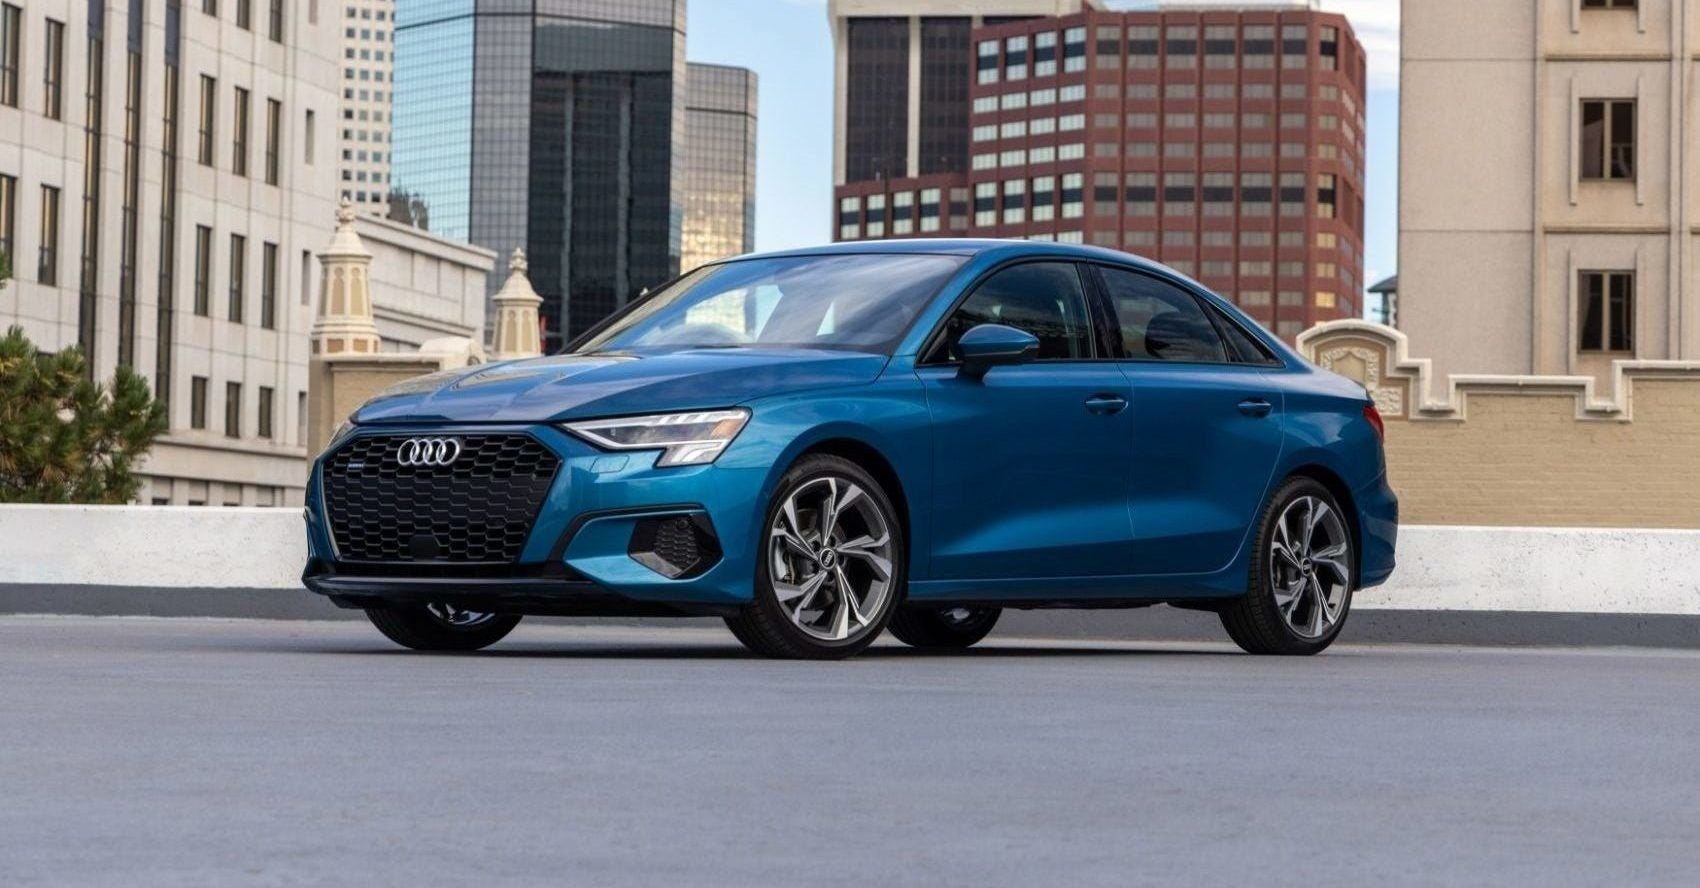 2022 Audi A3 Quick Overview: Pricing, Tech Features, Engine Specs & More